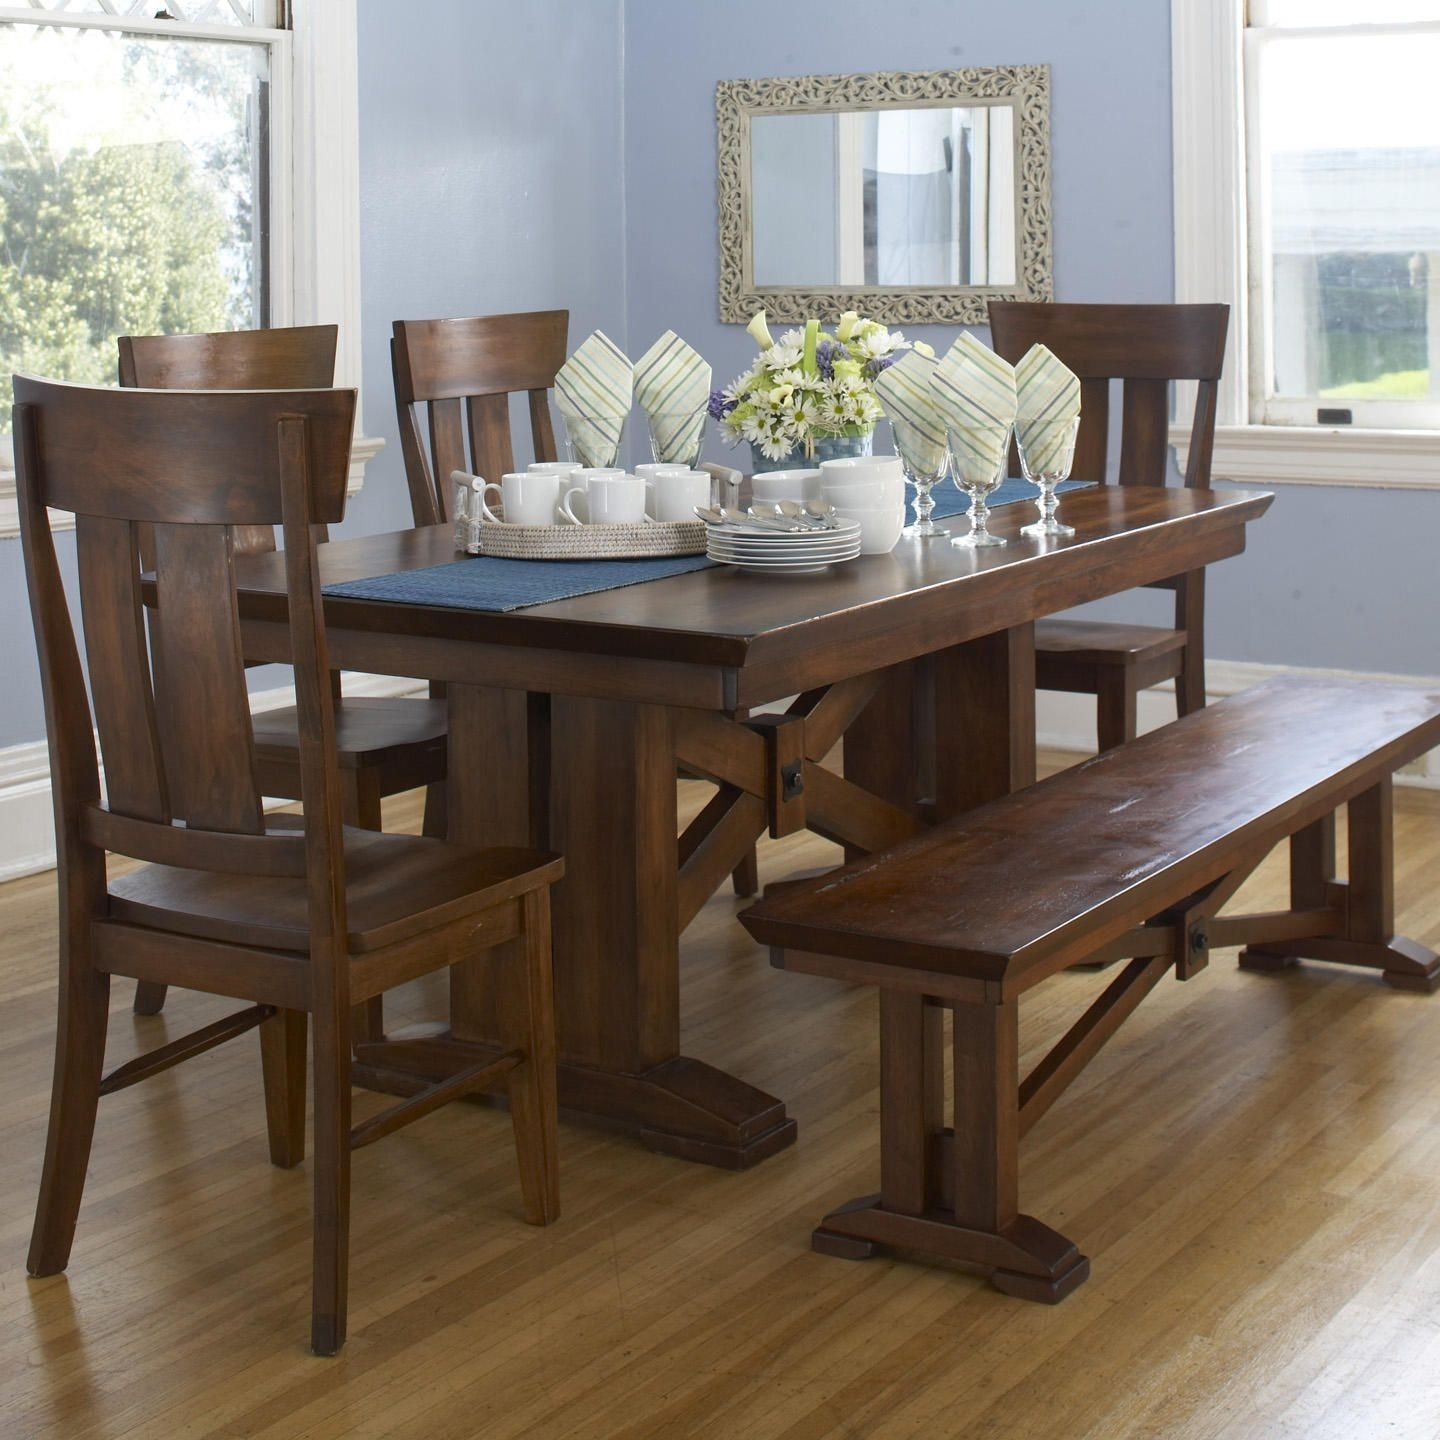 Dining Room Sets Dining Room Furniture Furniture Worldmarket Throughout Most Popular Market Dining Tables (Photo 1 of 20)